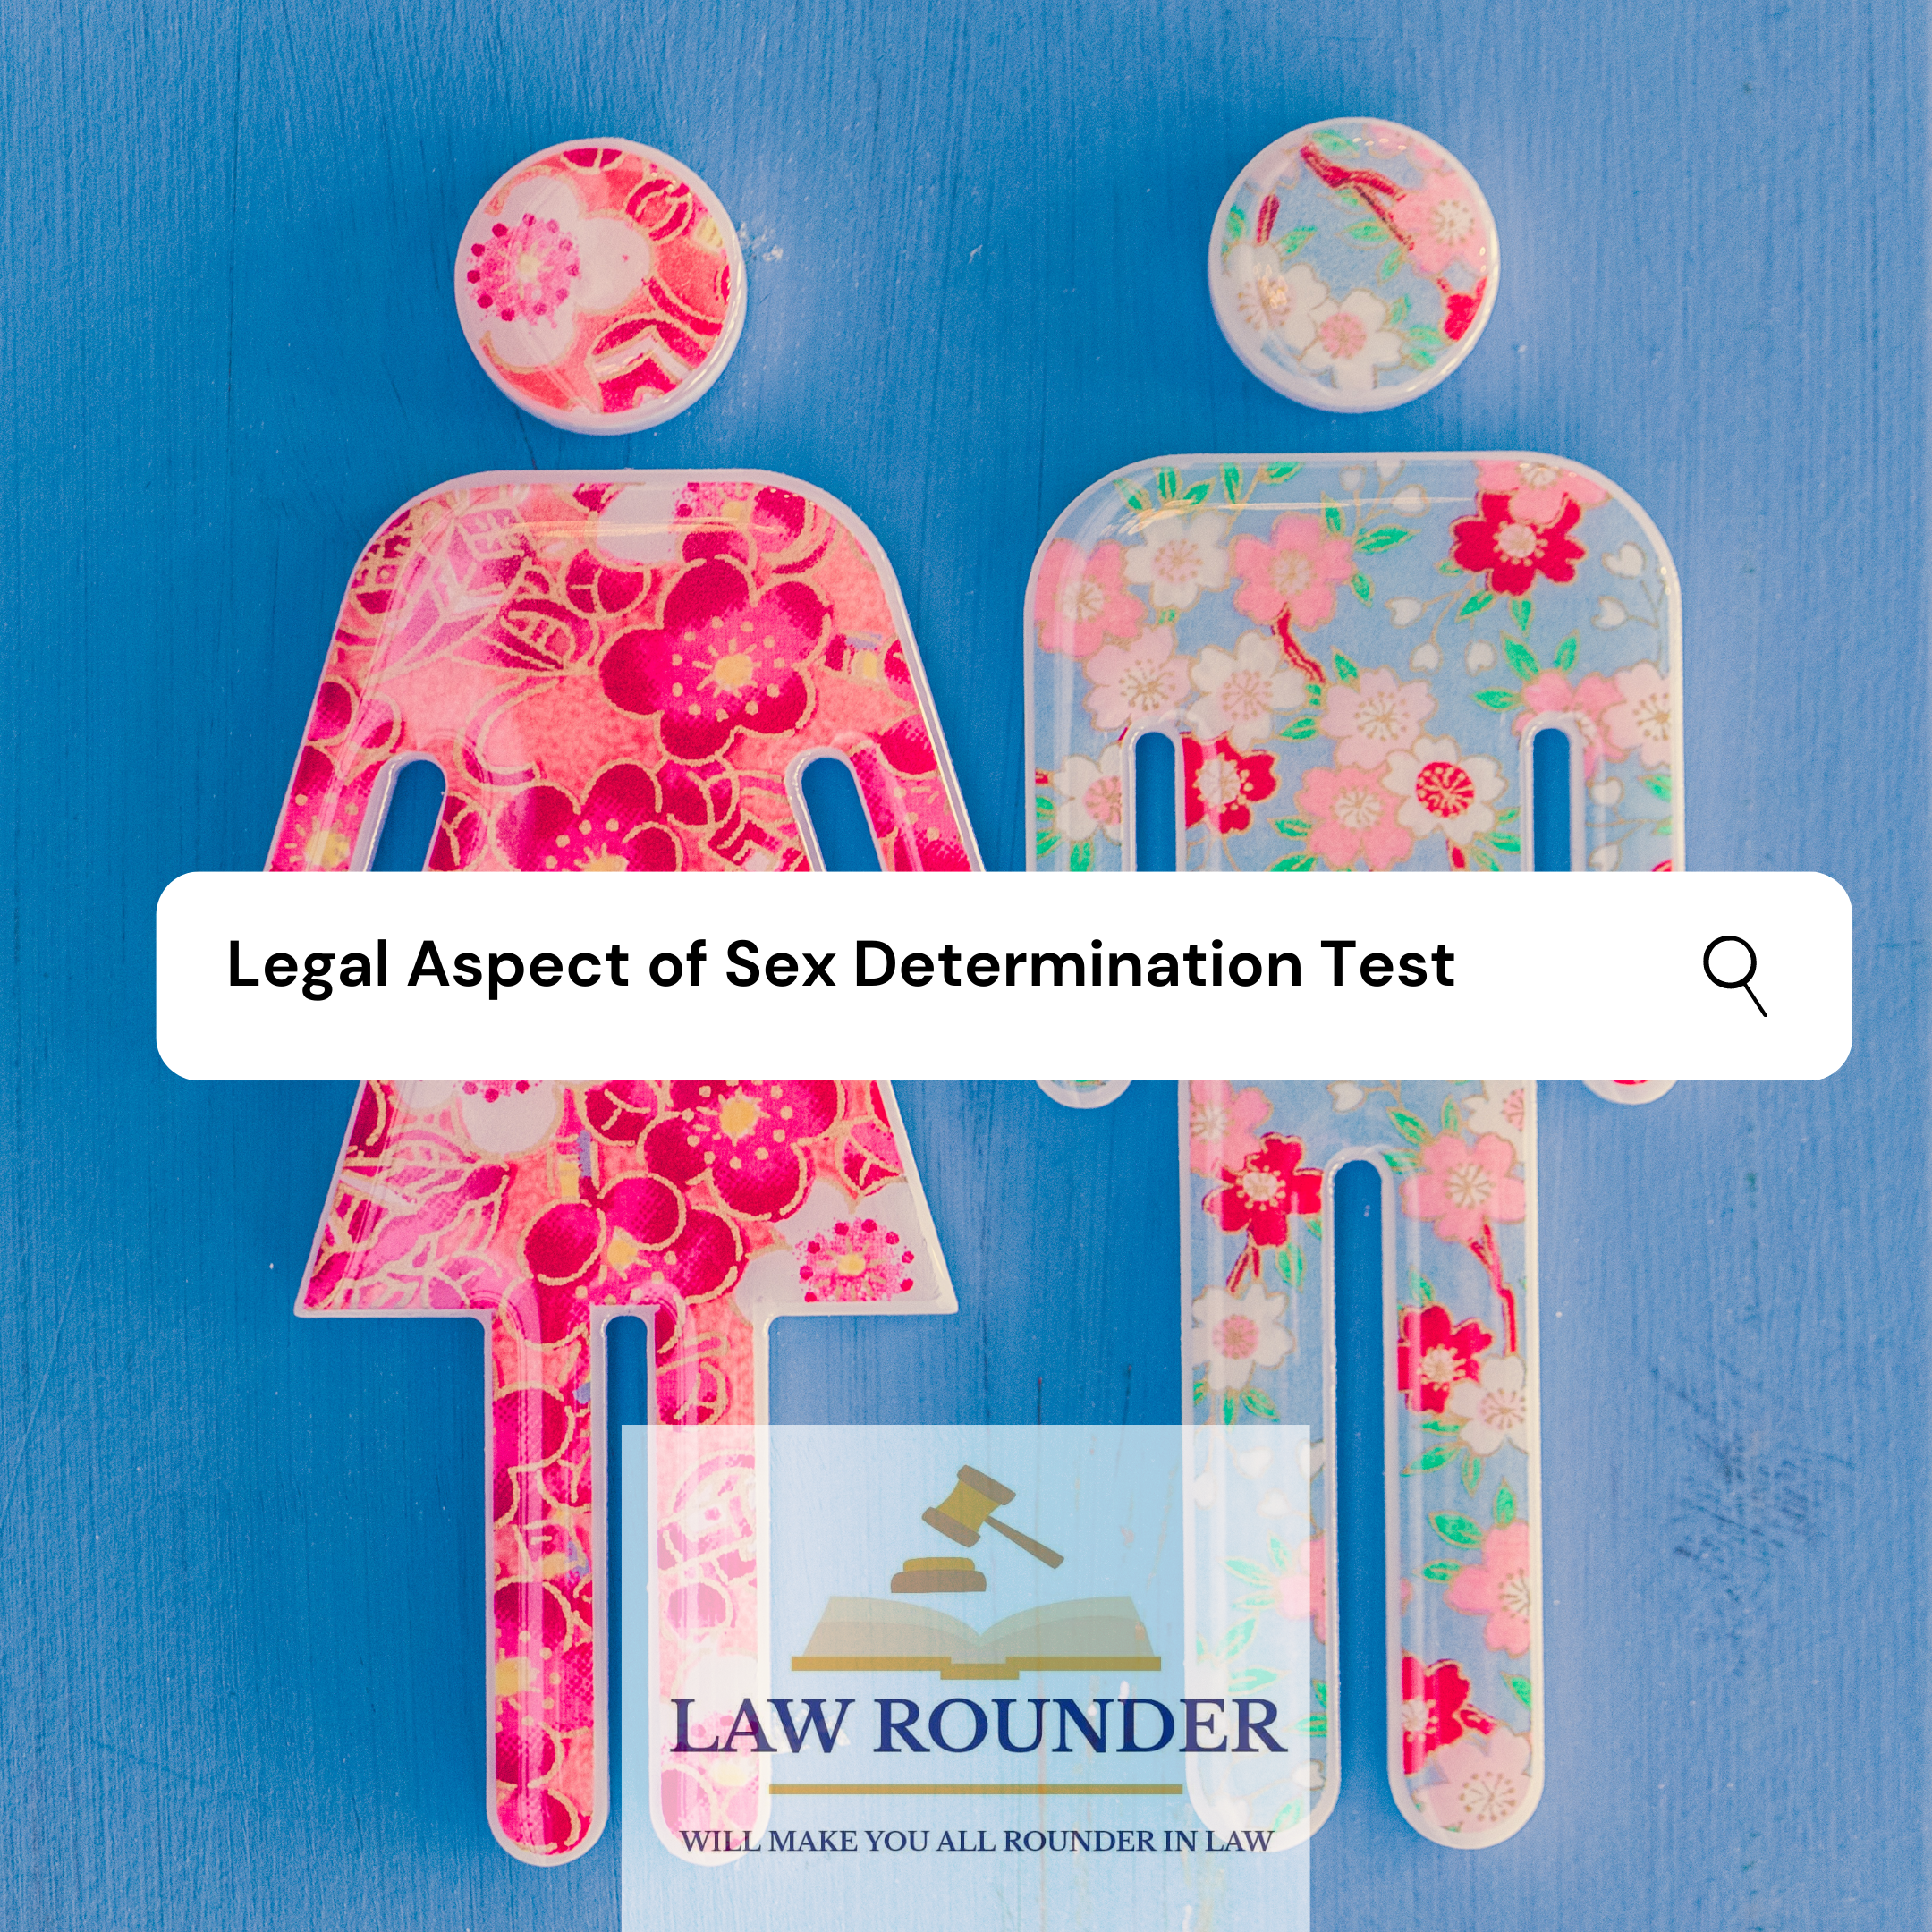 LEGAL ASPECT OF SEX DETERMINATION TEST